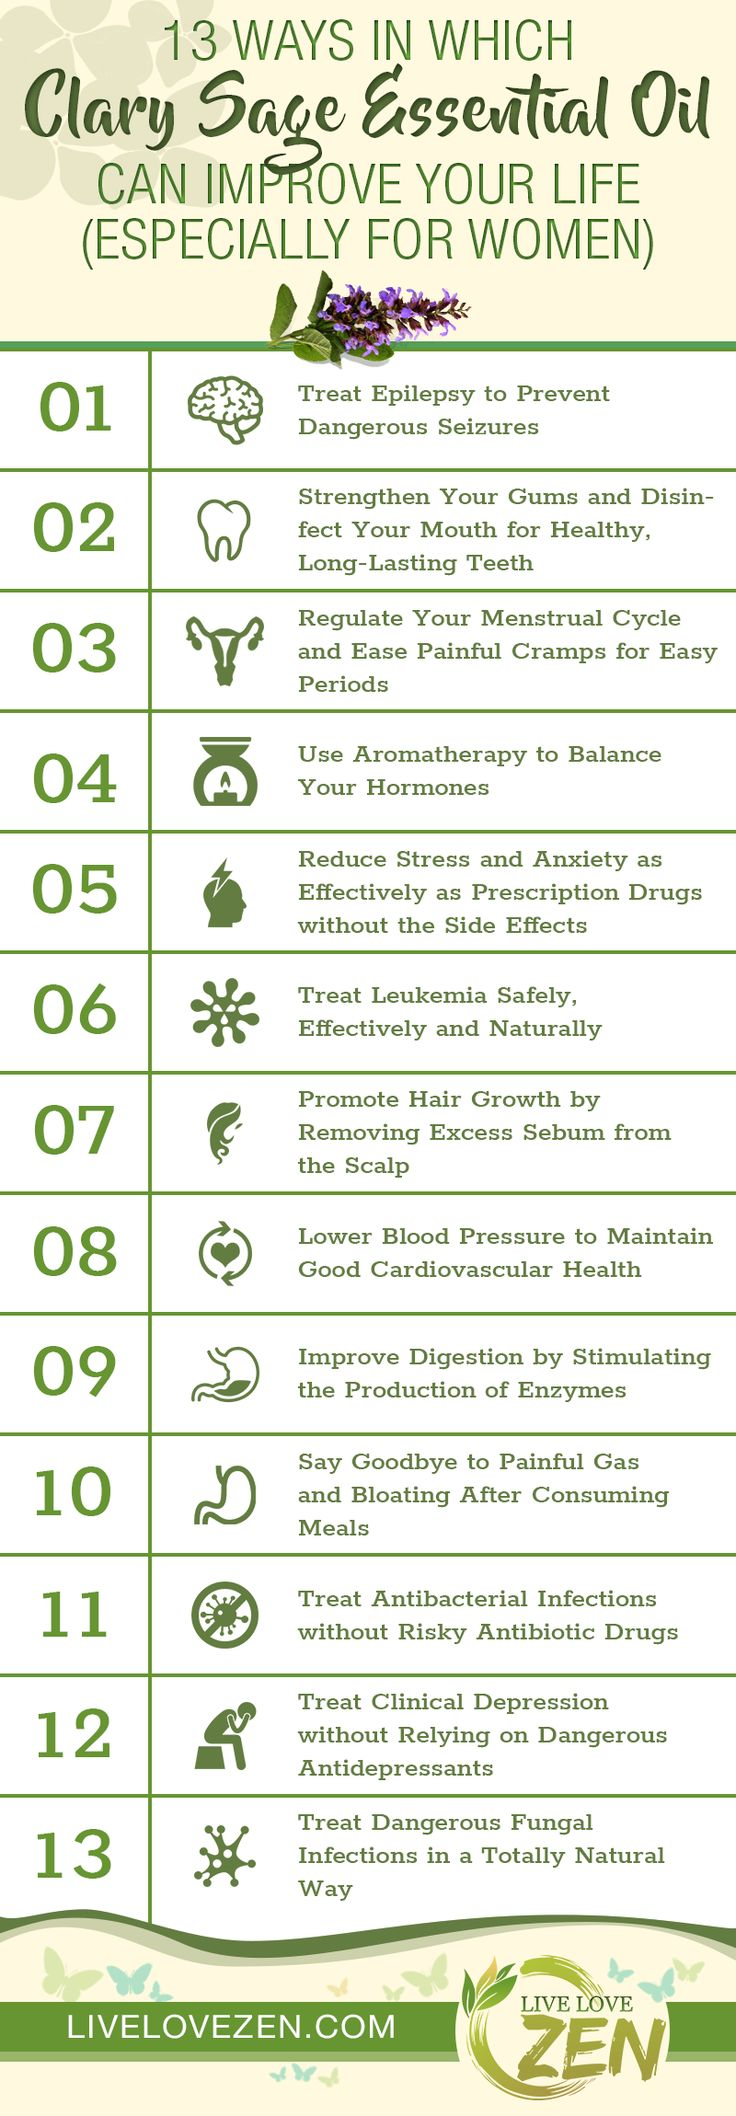 Clary sage essential oil is one of the lesser known essential oils despite its profound health benefits. When it comes to treating numerous health conditions, clary sage essential oil is an effective treatment unlike anything else. This incredible product can treat serious conditions such as leukemia, epilepsy and problems related to hormonal imbalances, just to …